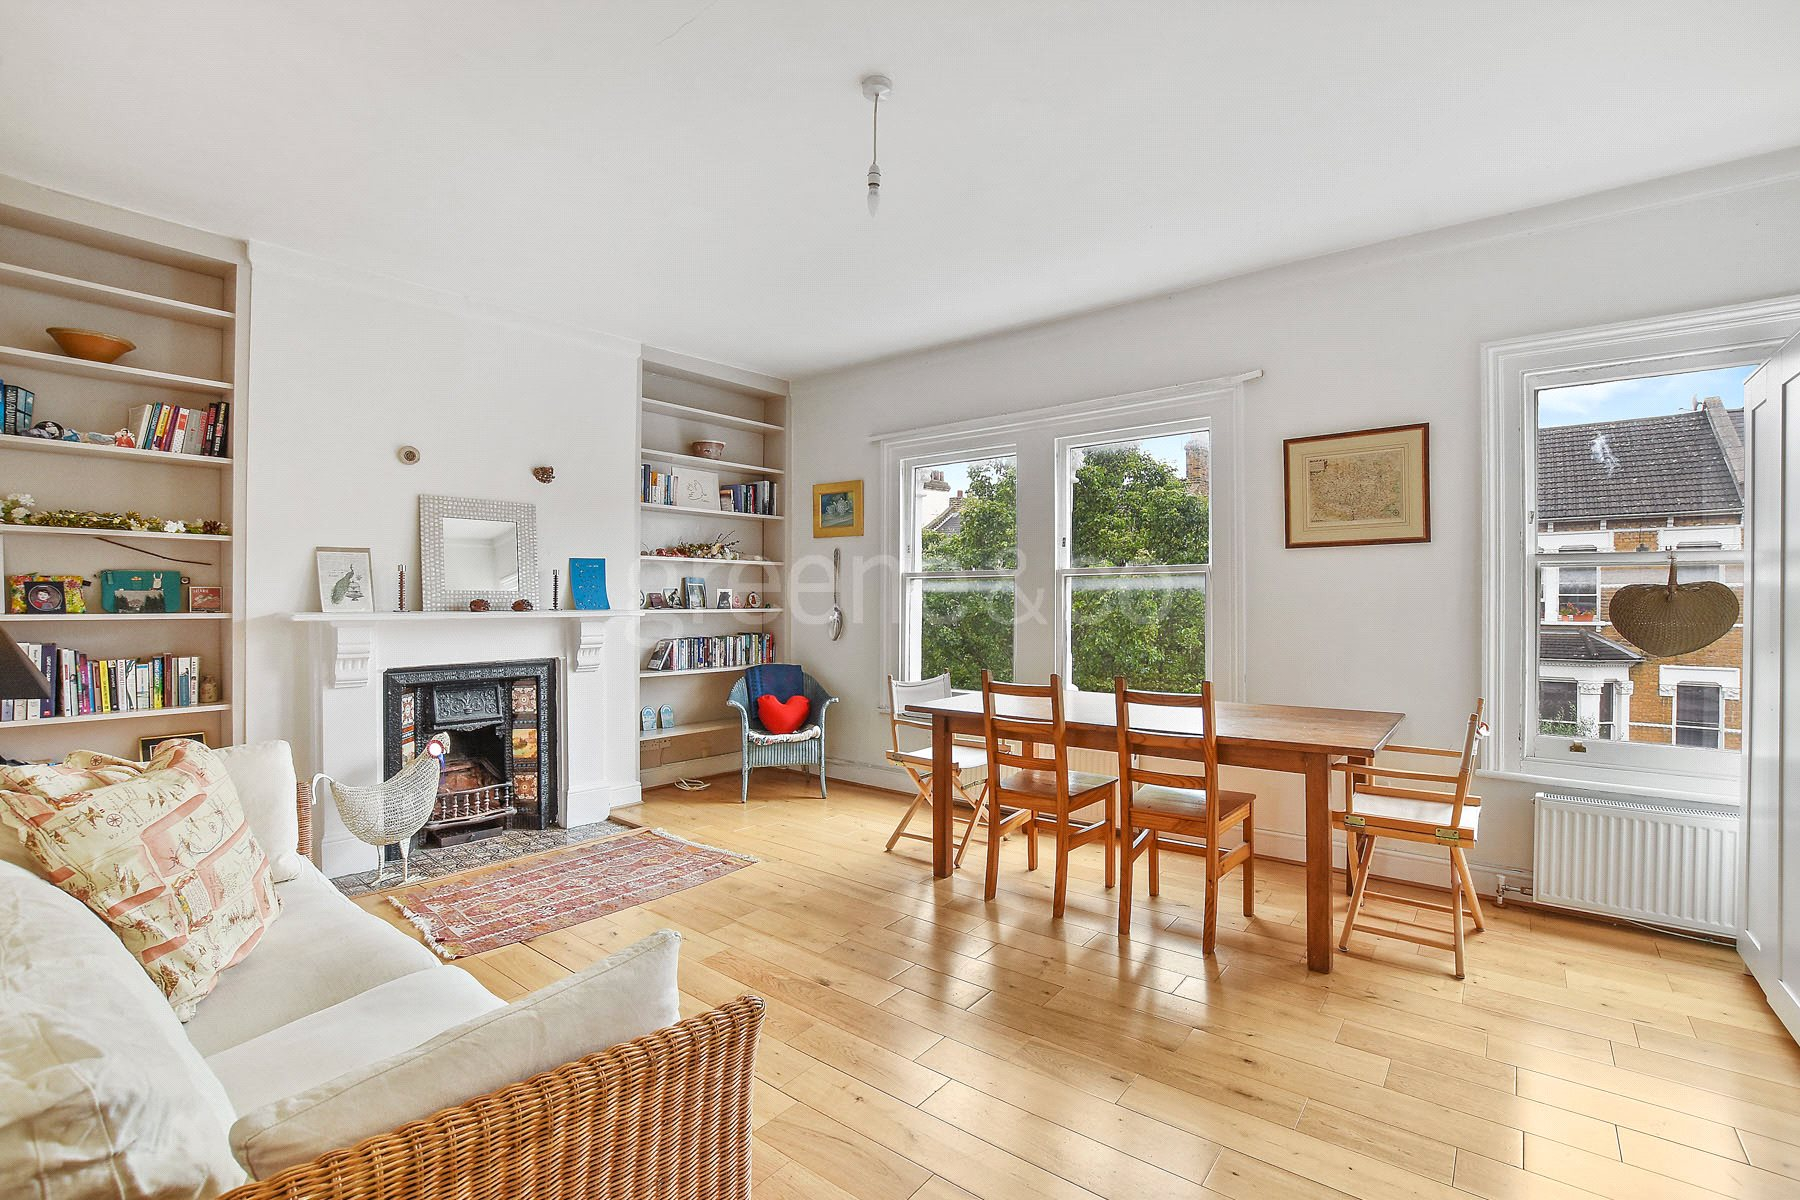 2 Bedrooms Maisonette Flat for sale in Saltram Crescent, Maida Vale, London, W9